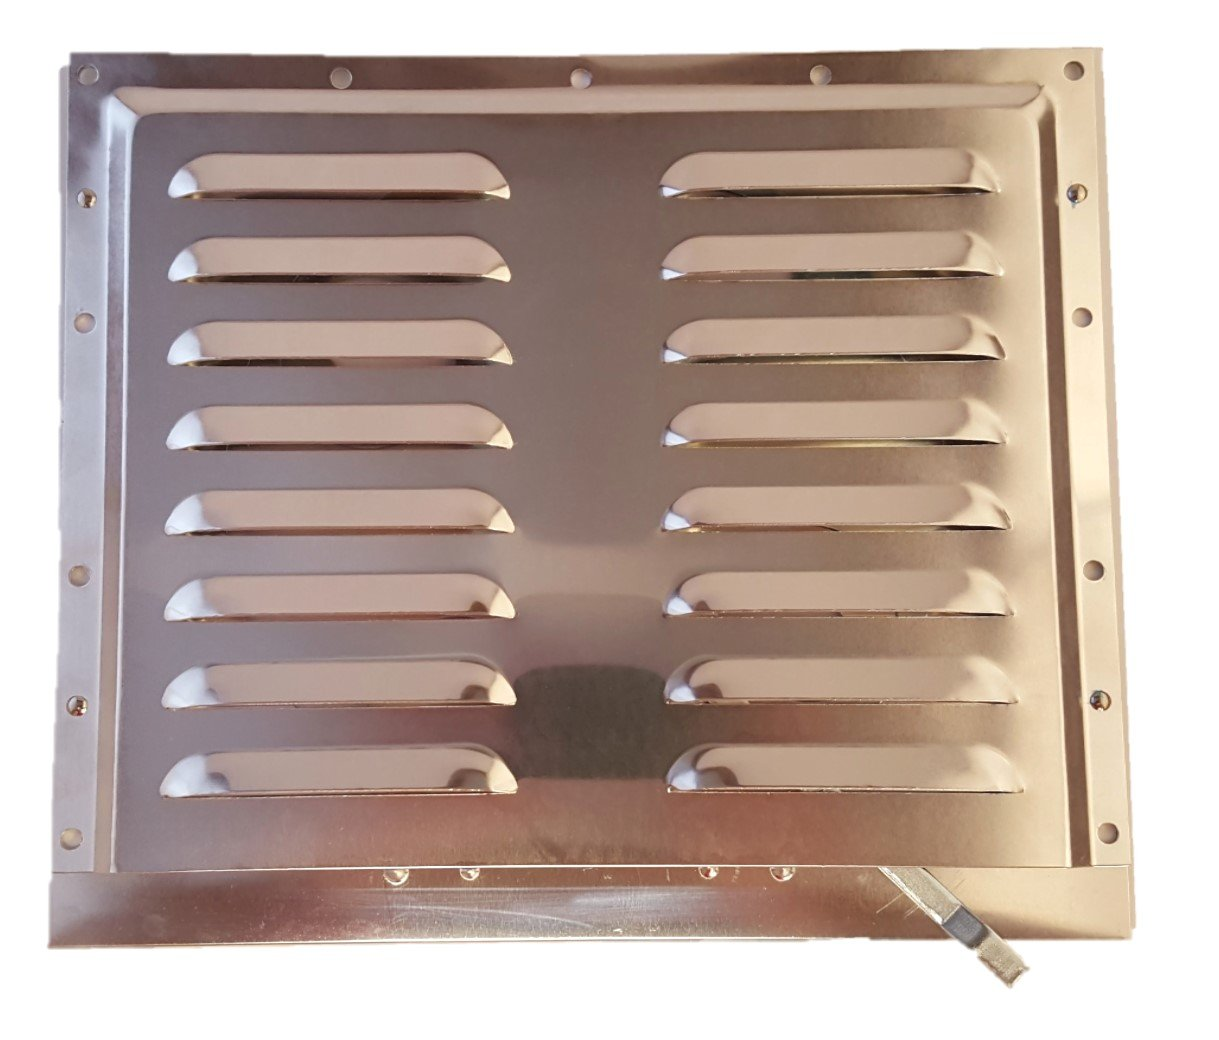 Fleet Engineers 024-03000 - Exterior aluminum adjustable louvered vent